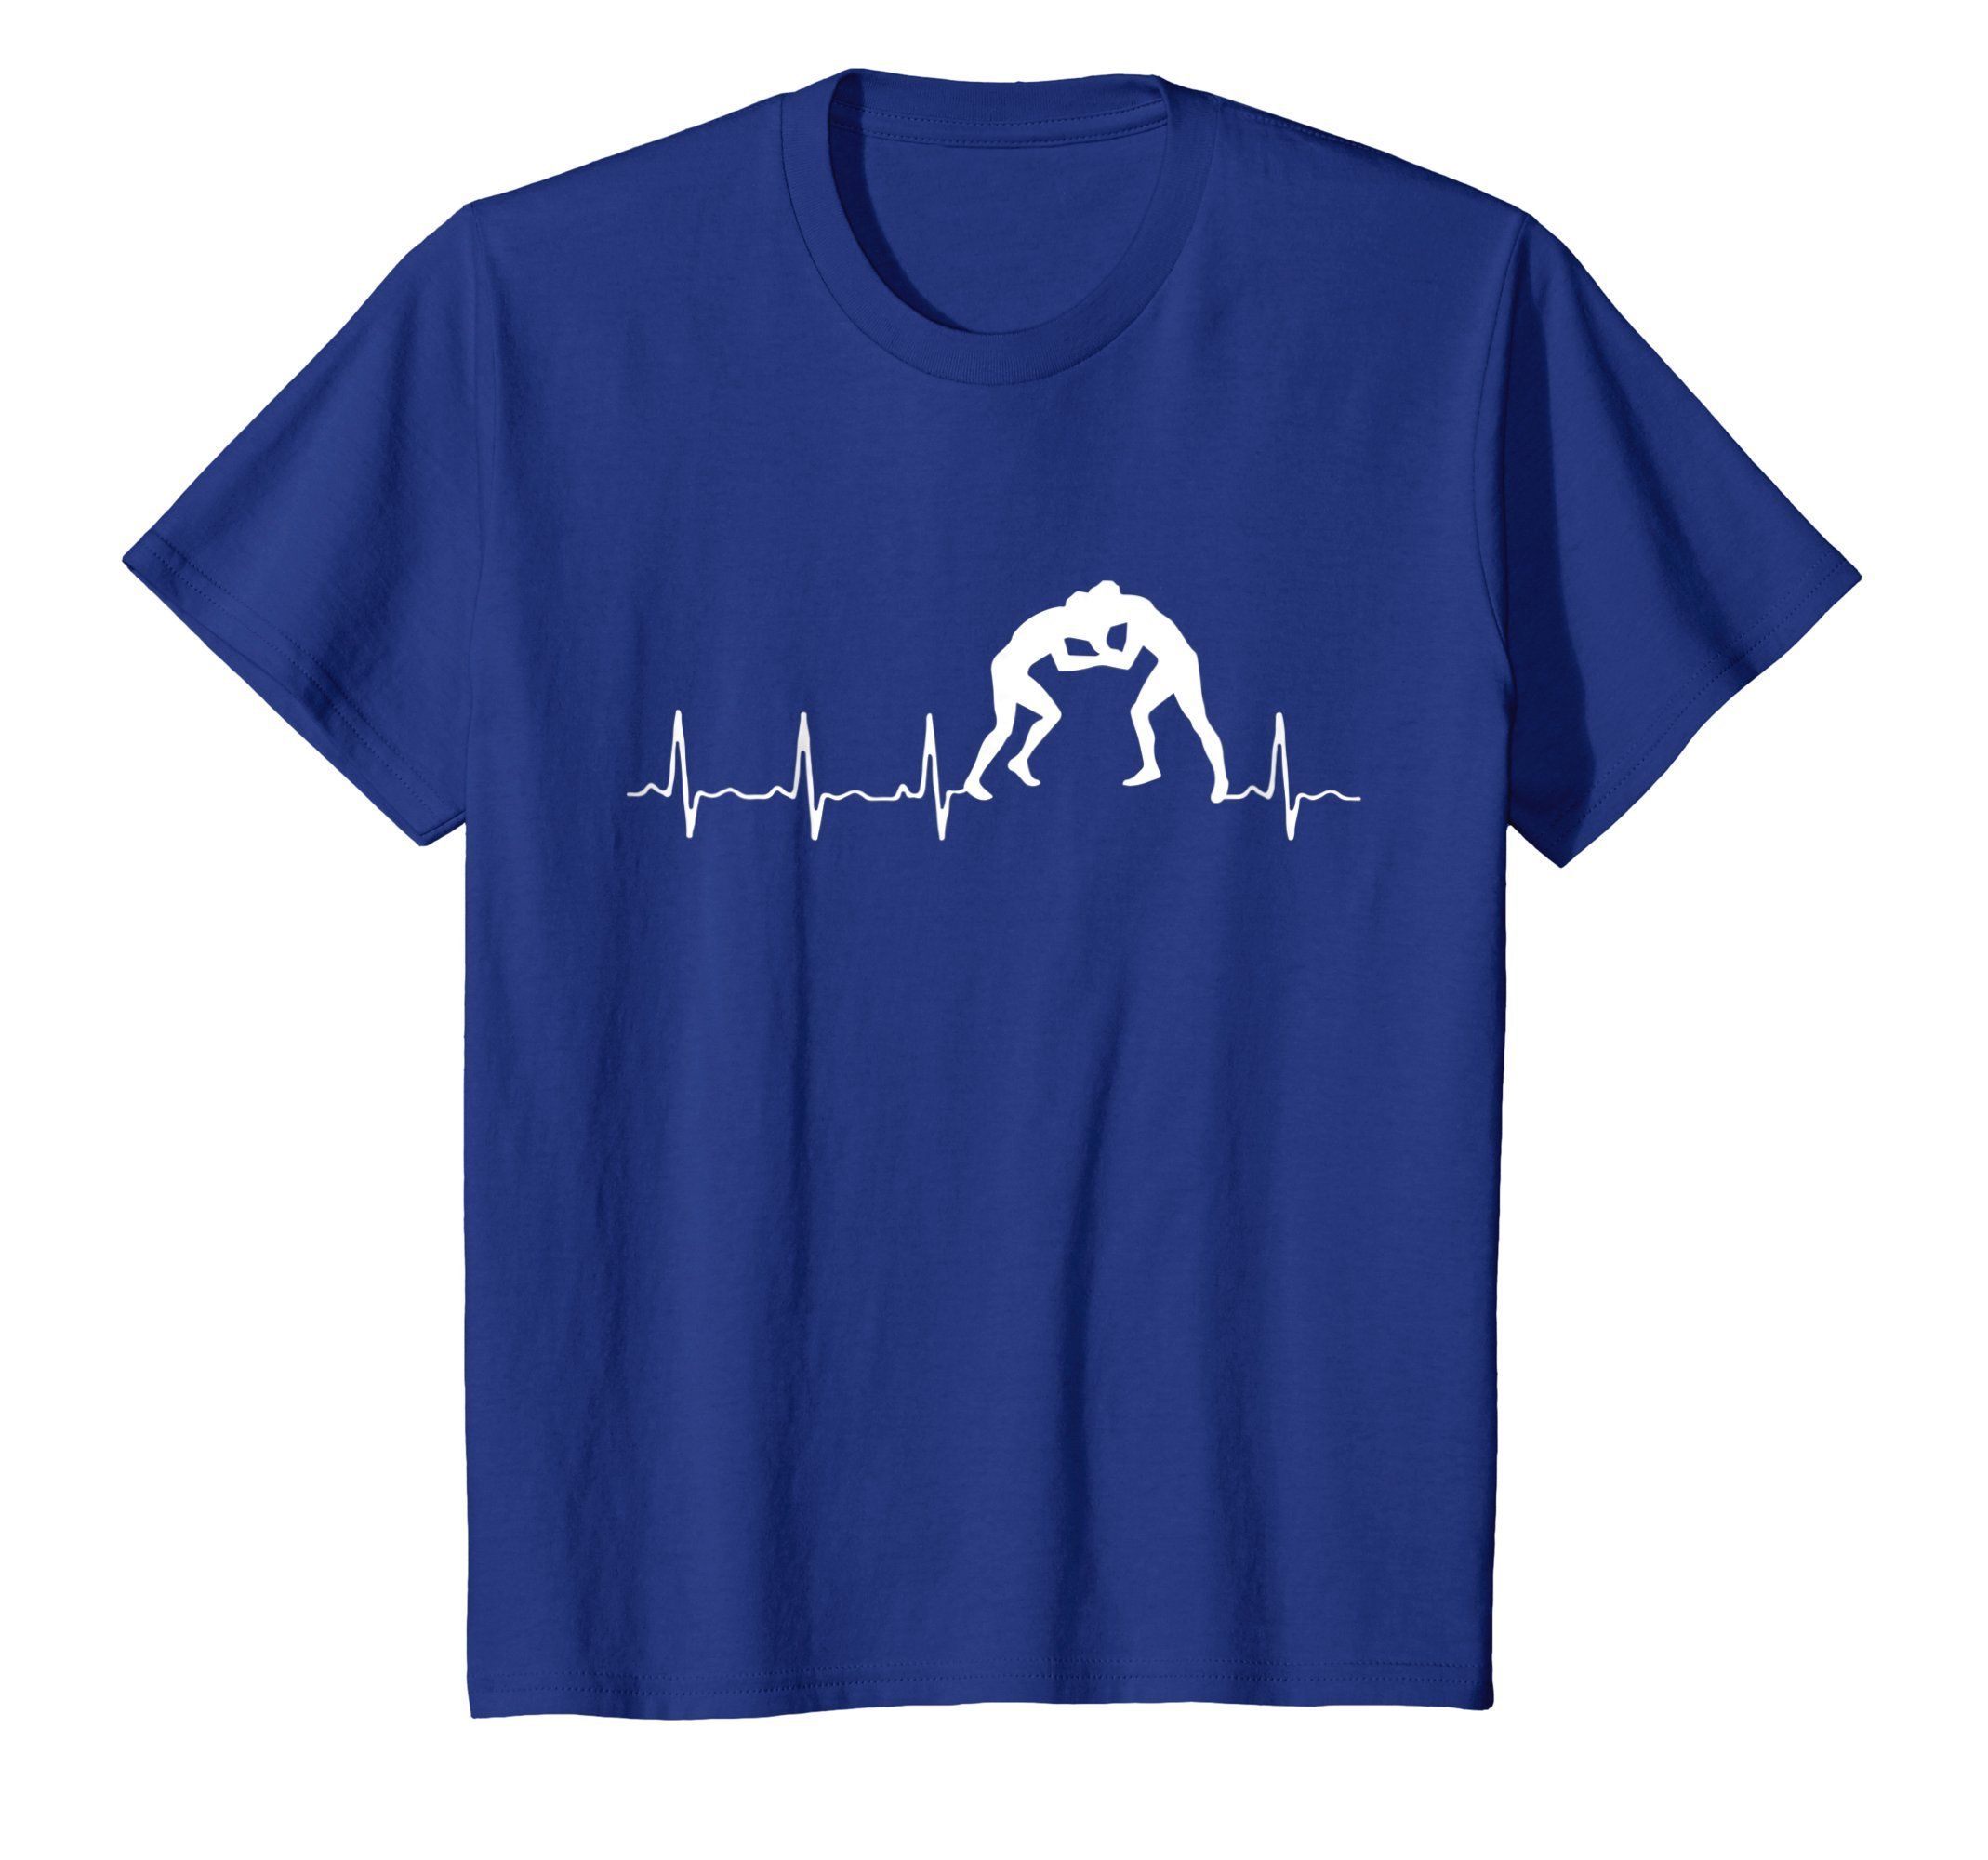 Kids Wrestling Apparel - Heartbeat T-shirt for Moms, Coaches 12 Royal Blue